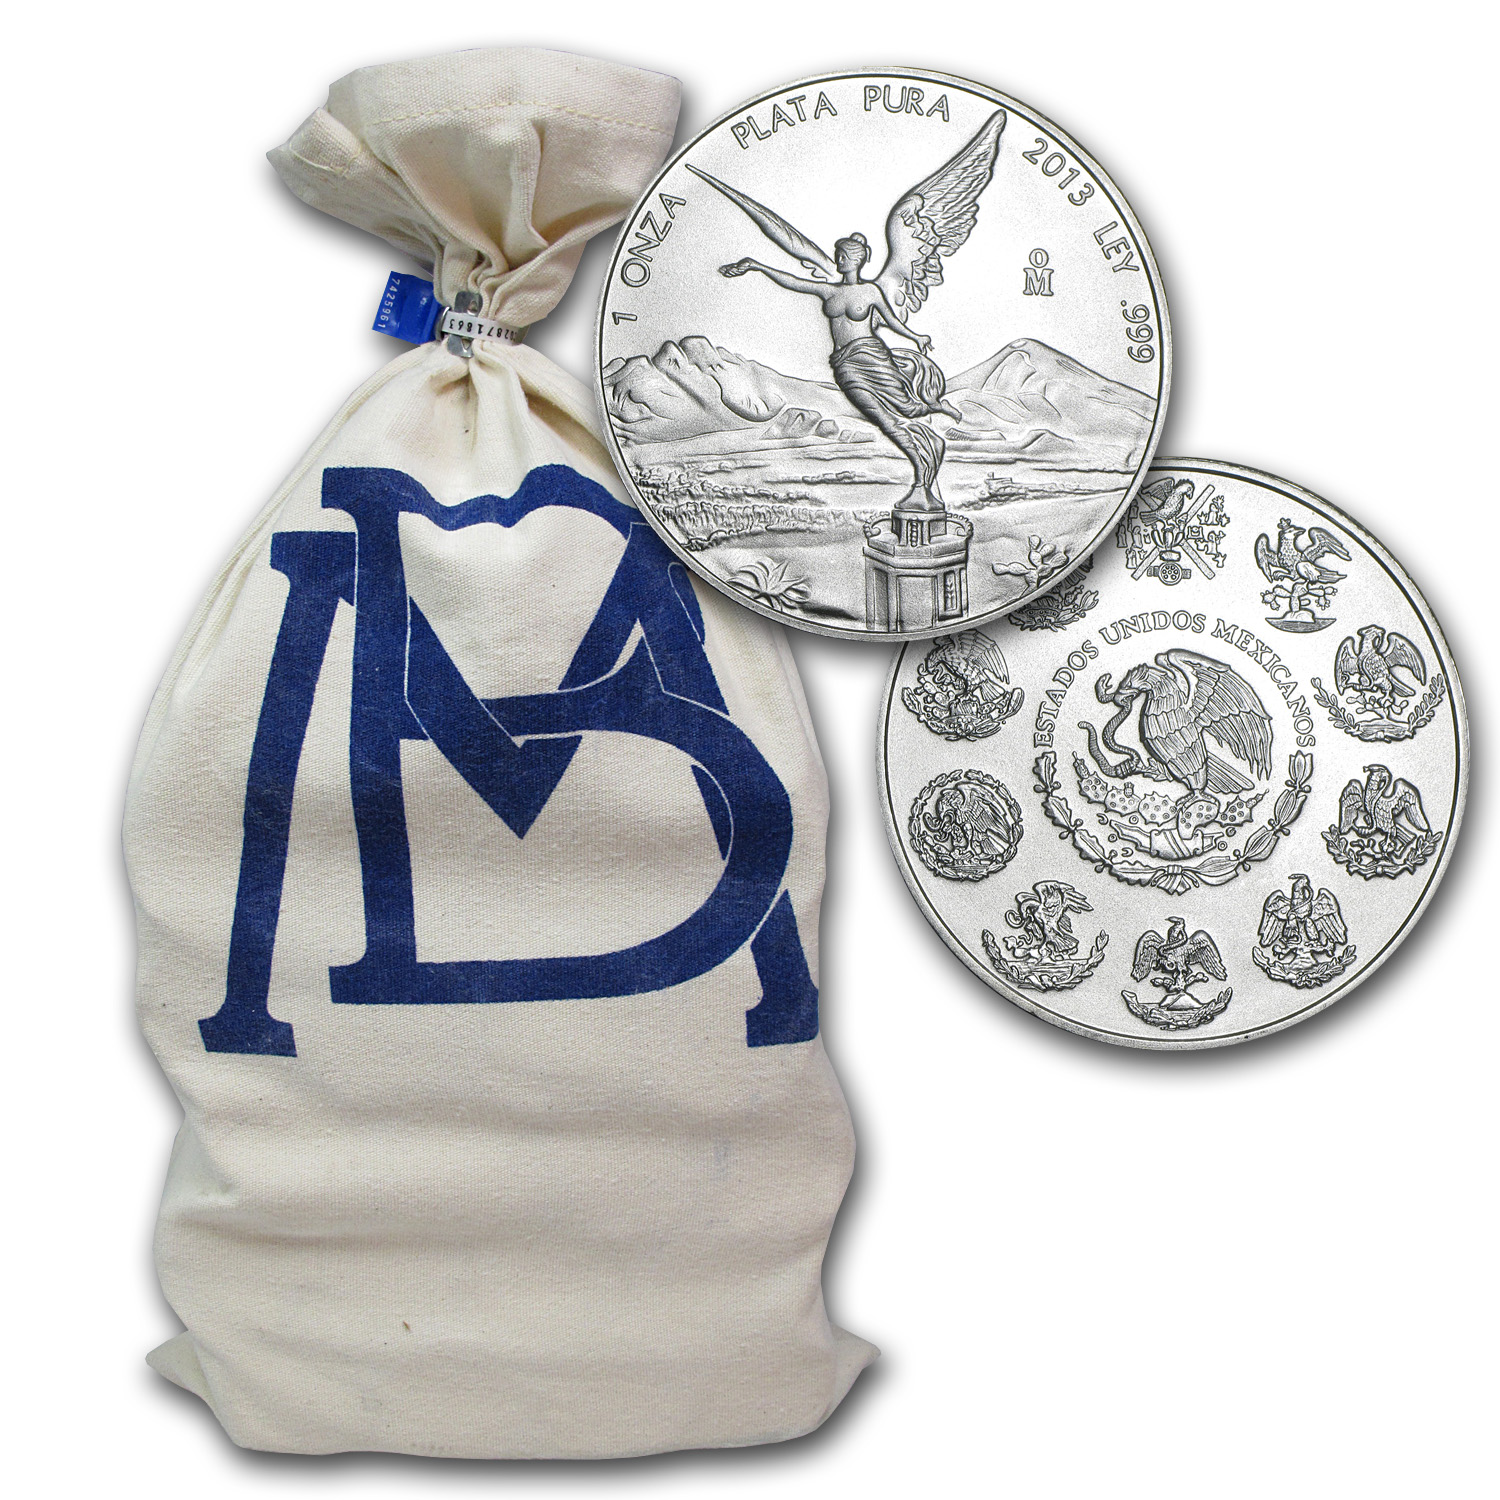 2013 1 oz Silver Mexican Libertad 500-Coin Original Bank Bag